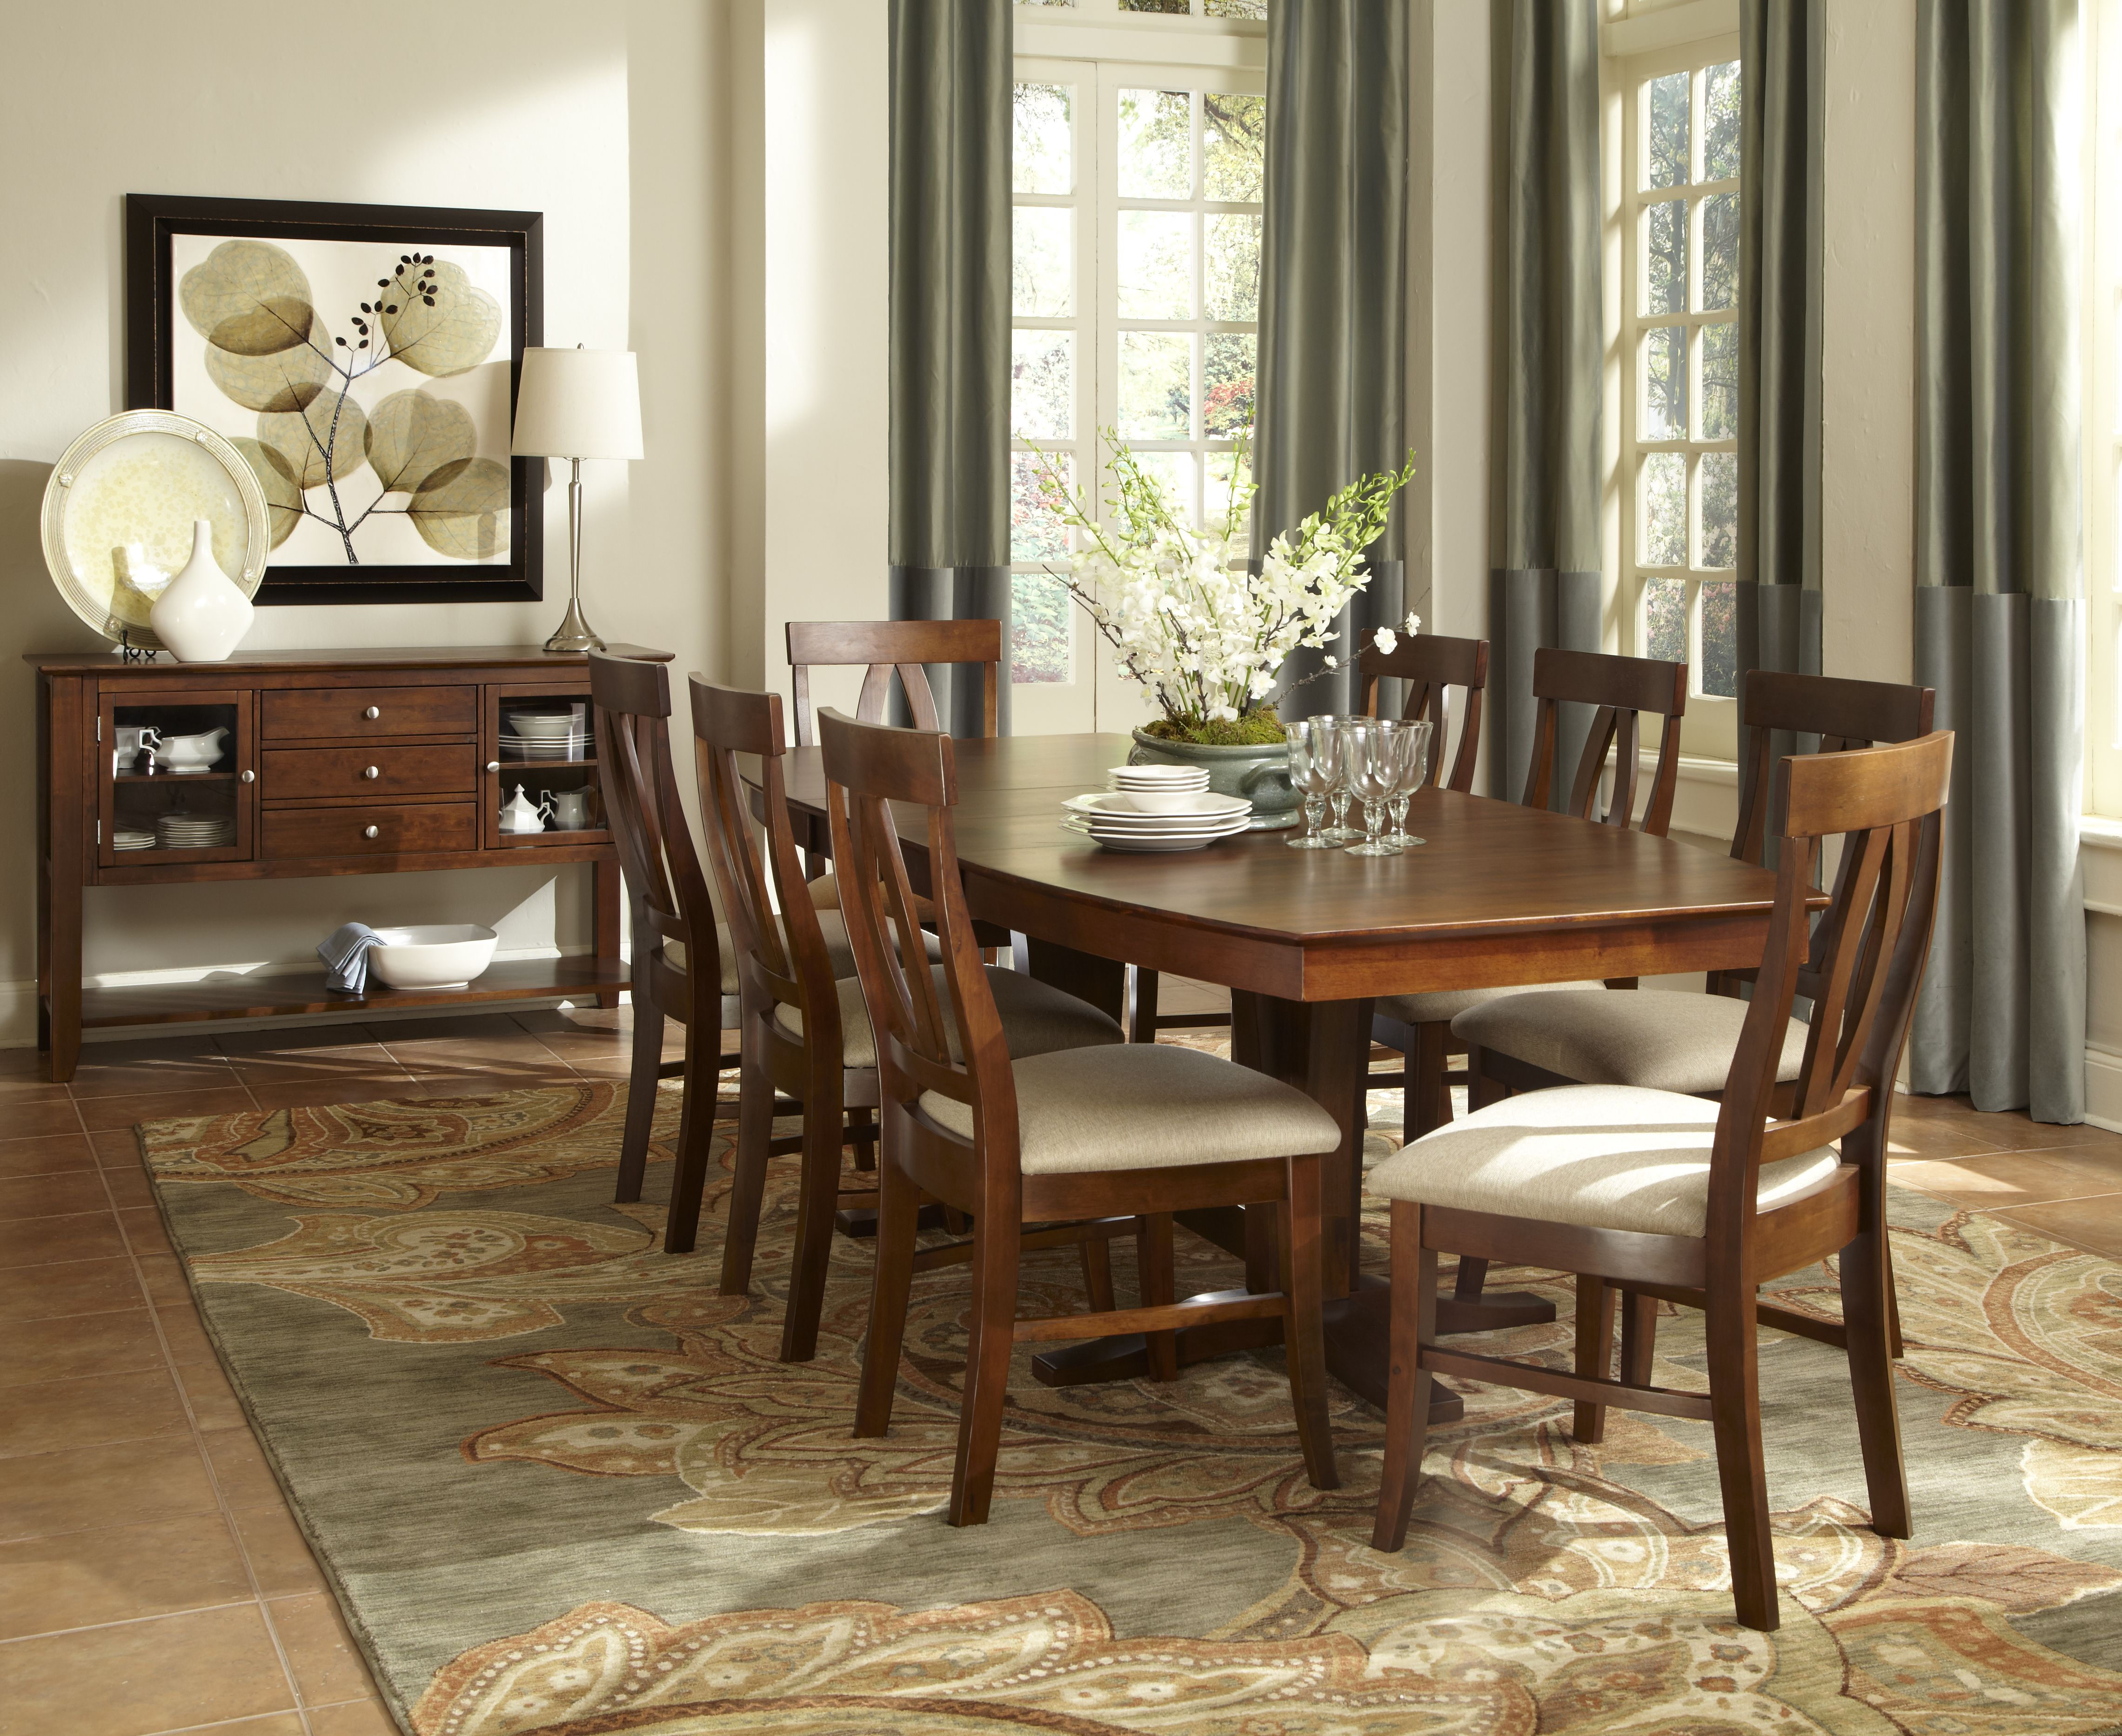 Cosmopolitan Collection At Wood Crafted Furniture Anchorage Ak Impressive Comfortable Dining Room Sets Review